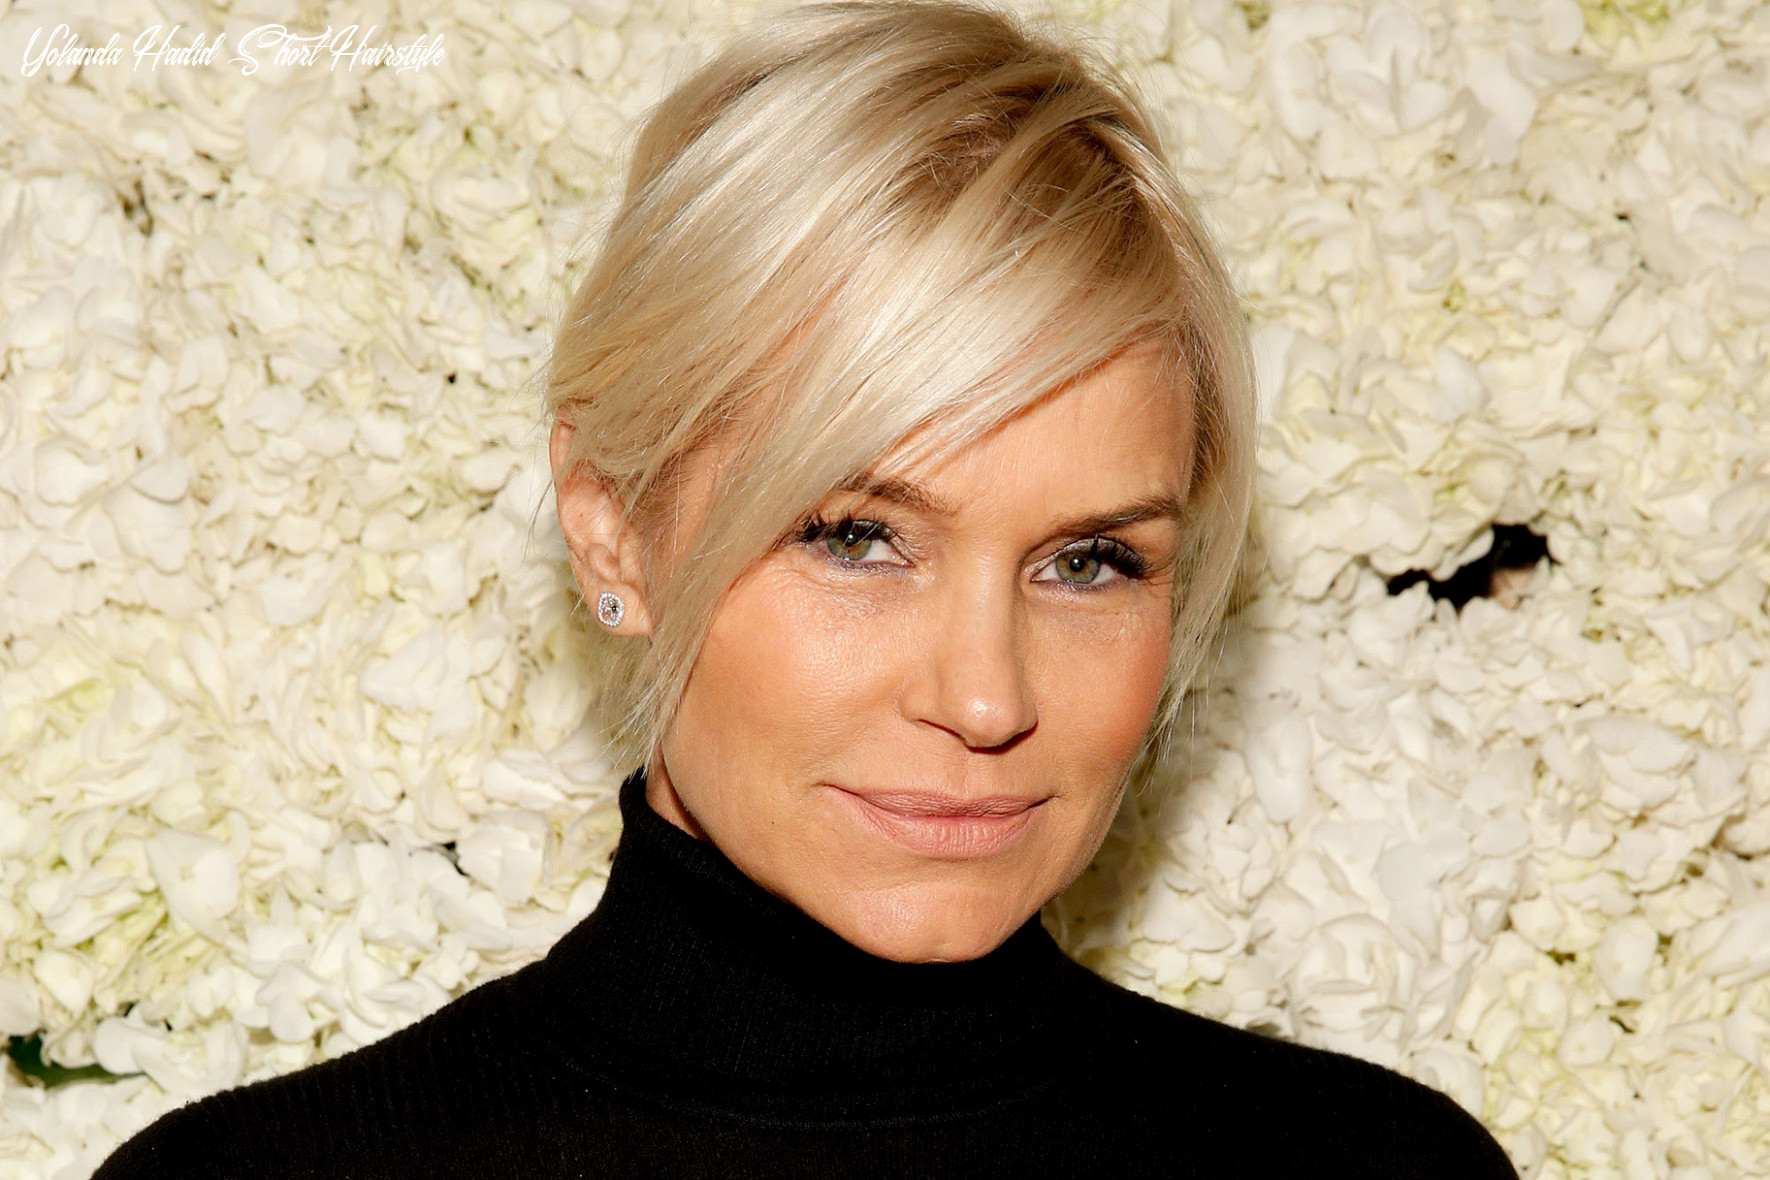 Yolanda Foster Haircut: See Photo of Her Short Style | The Daily Dish